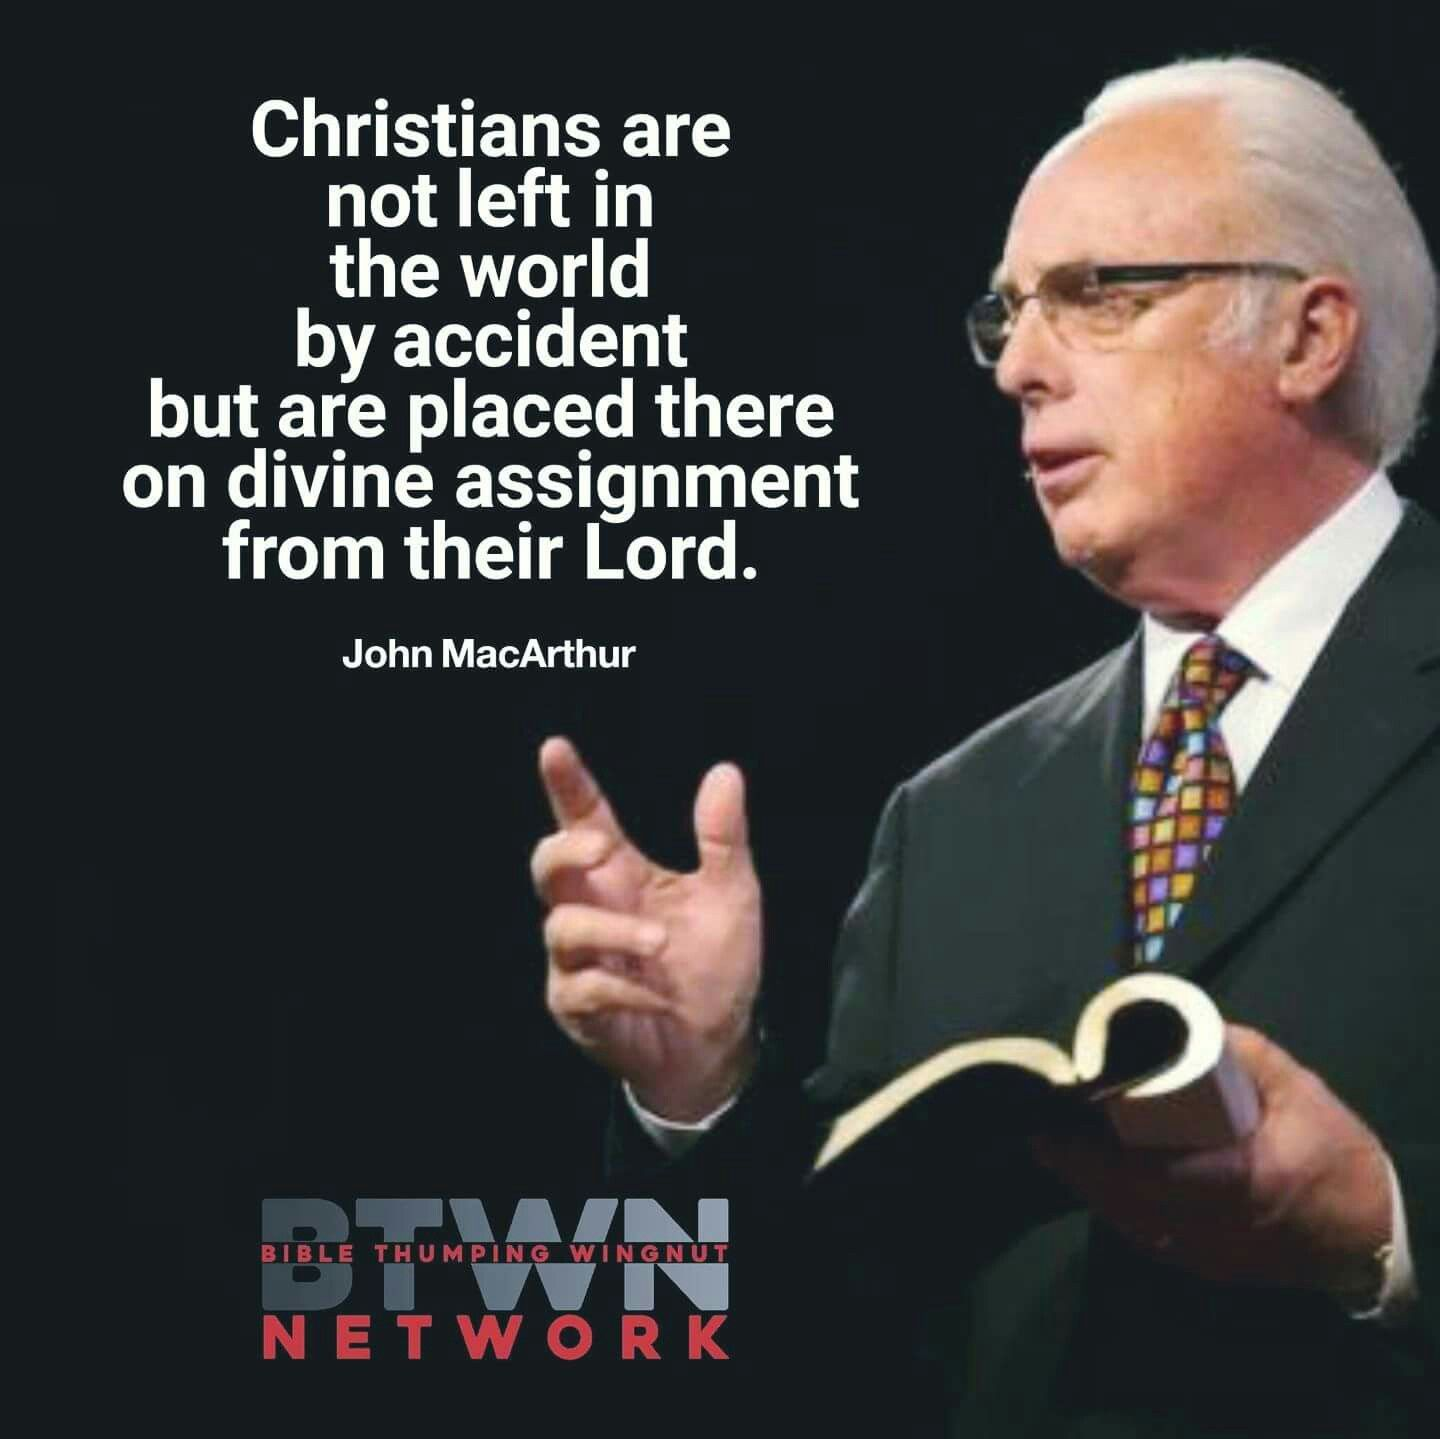 John Macarthur Quotes Christian Quotes  John Macarthur Quotes  God's Sovereignty